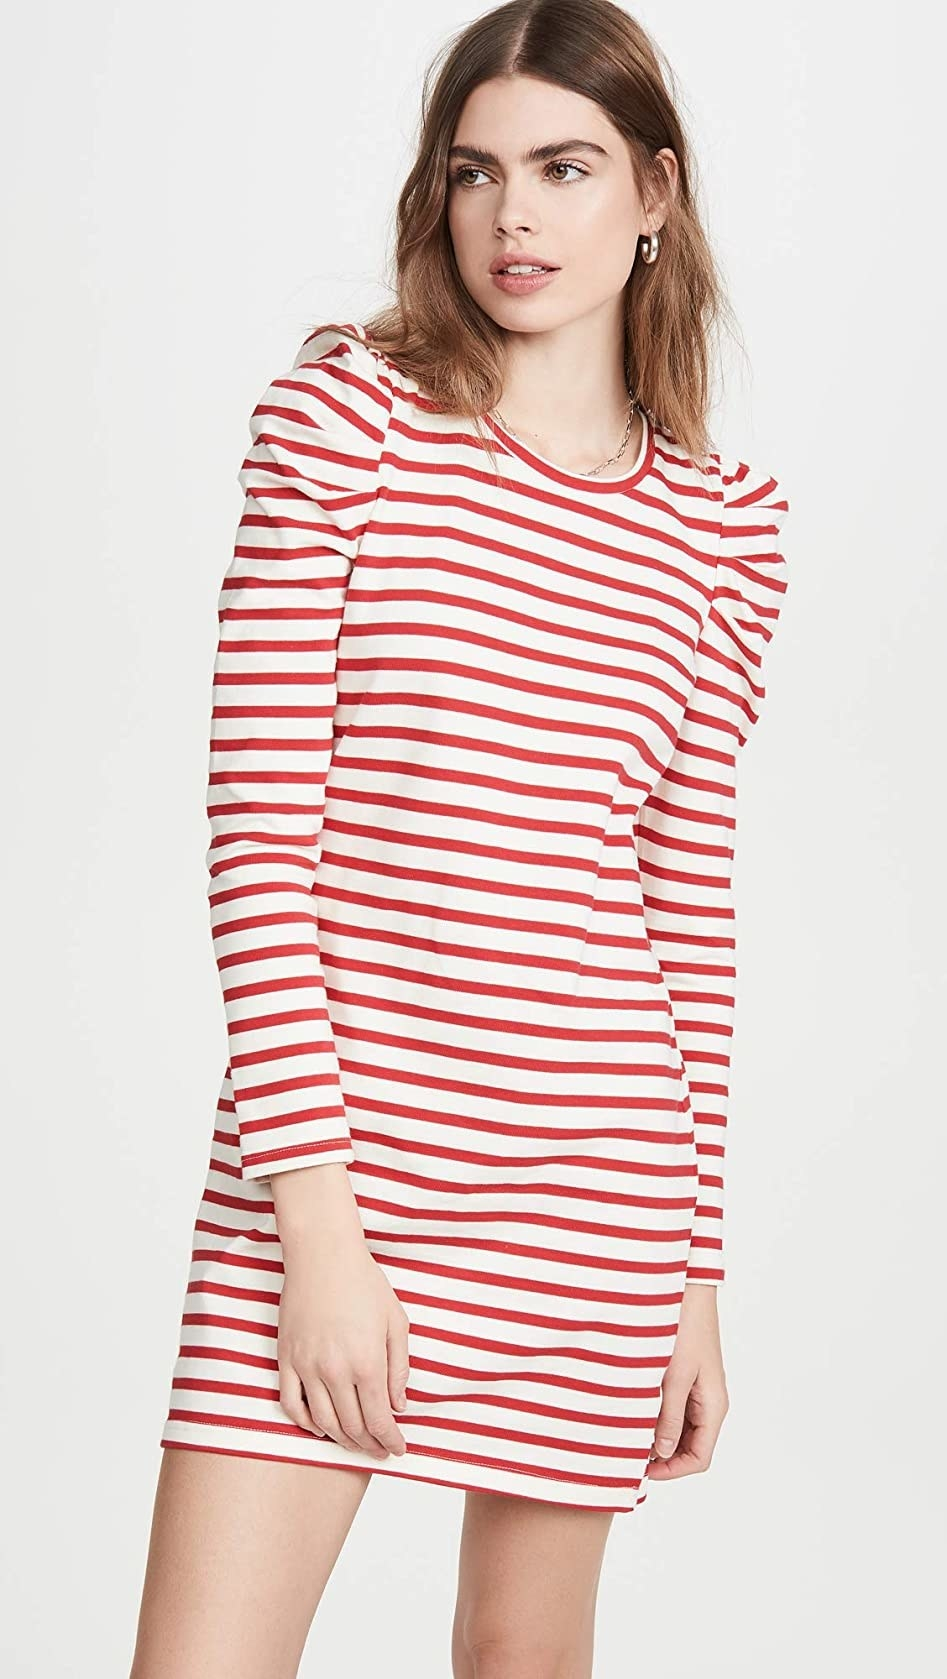 The red and white striped,  long-sleeved dress